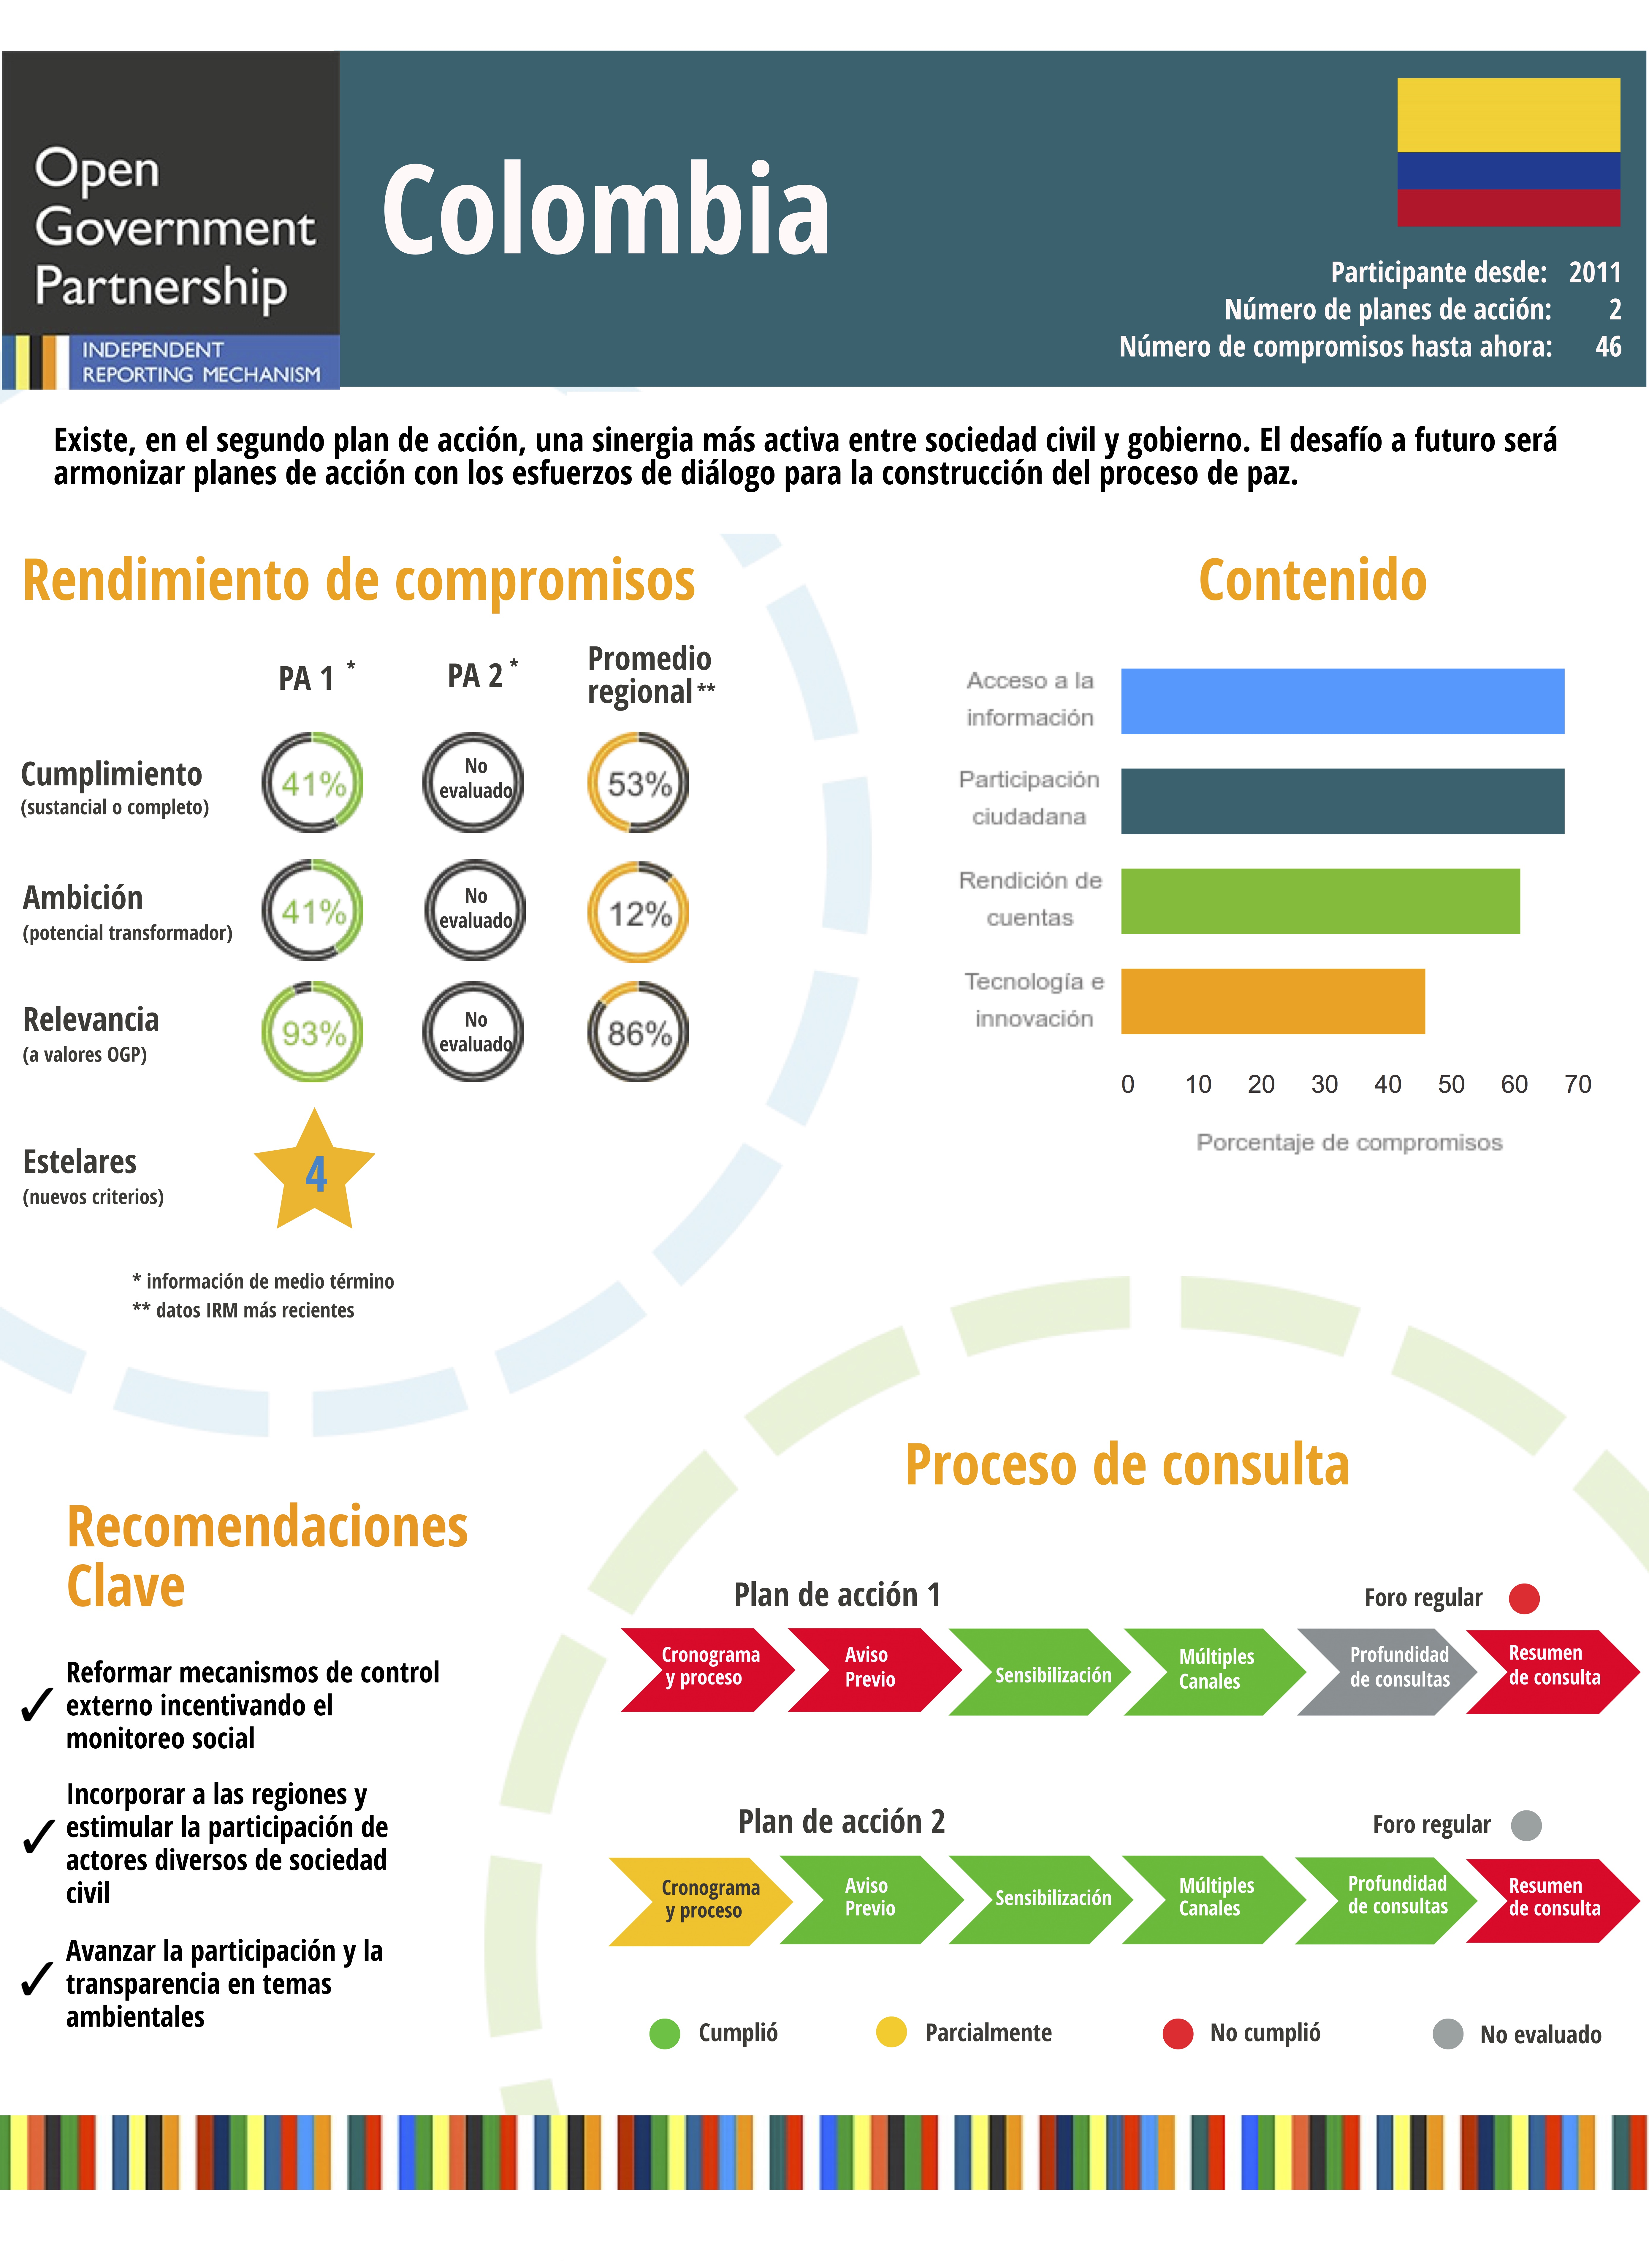 Colombia | Open Government Partnership